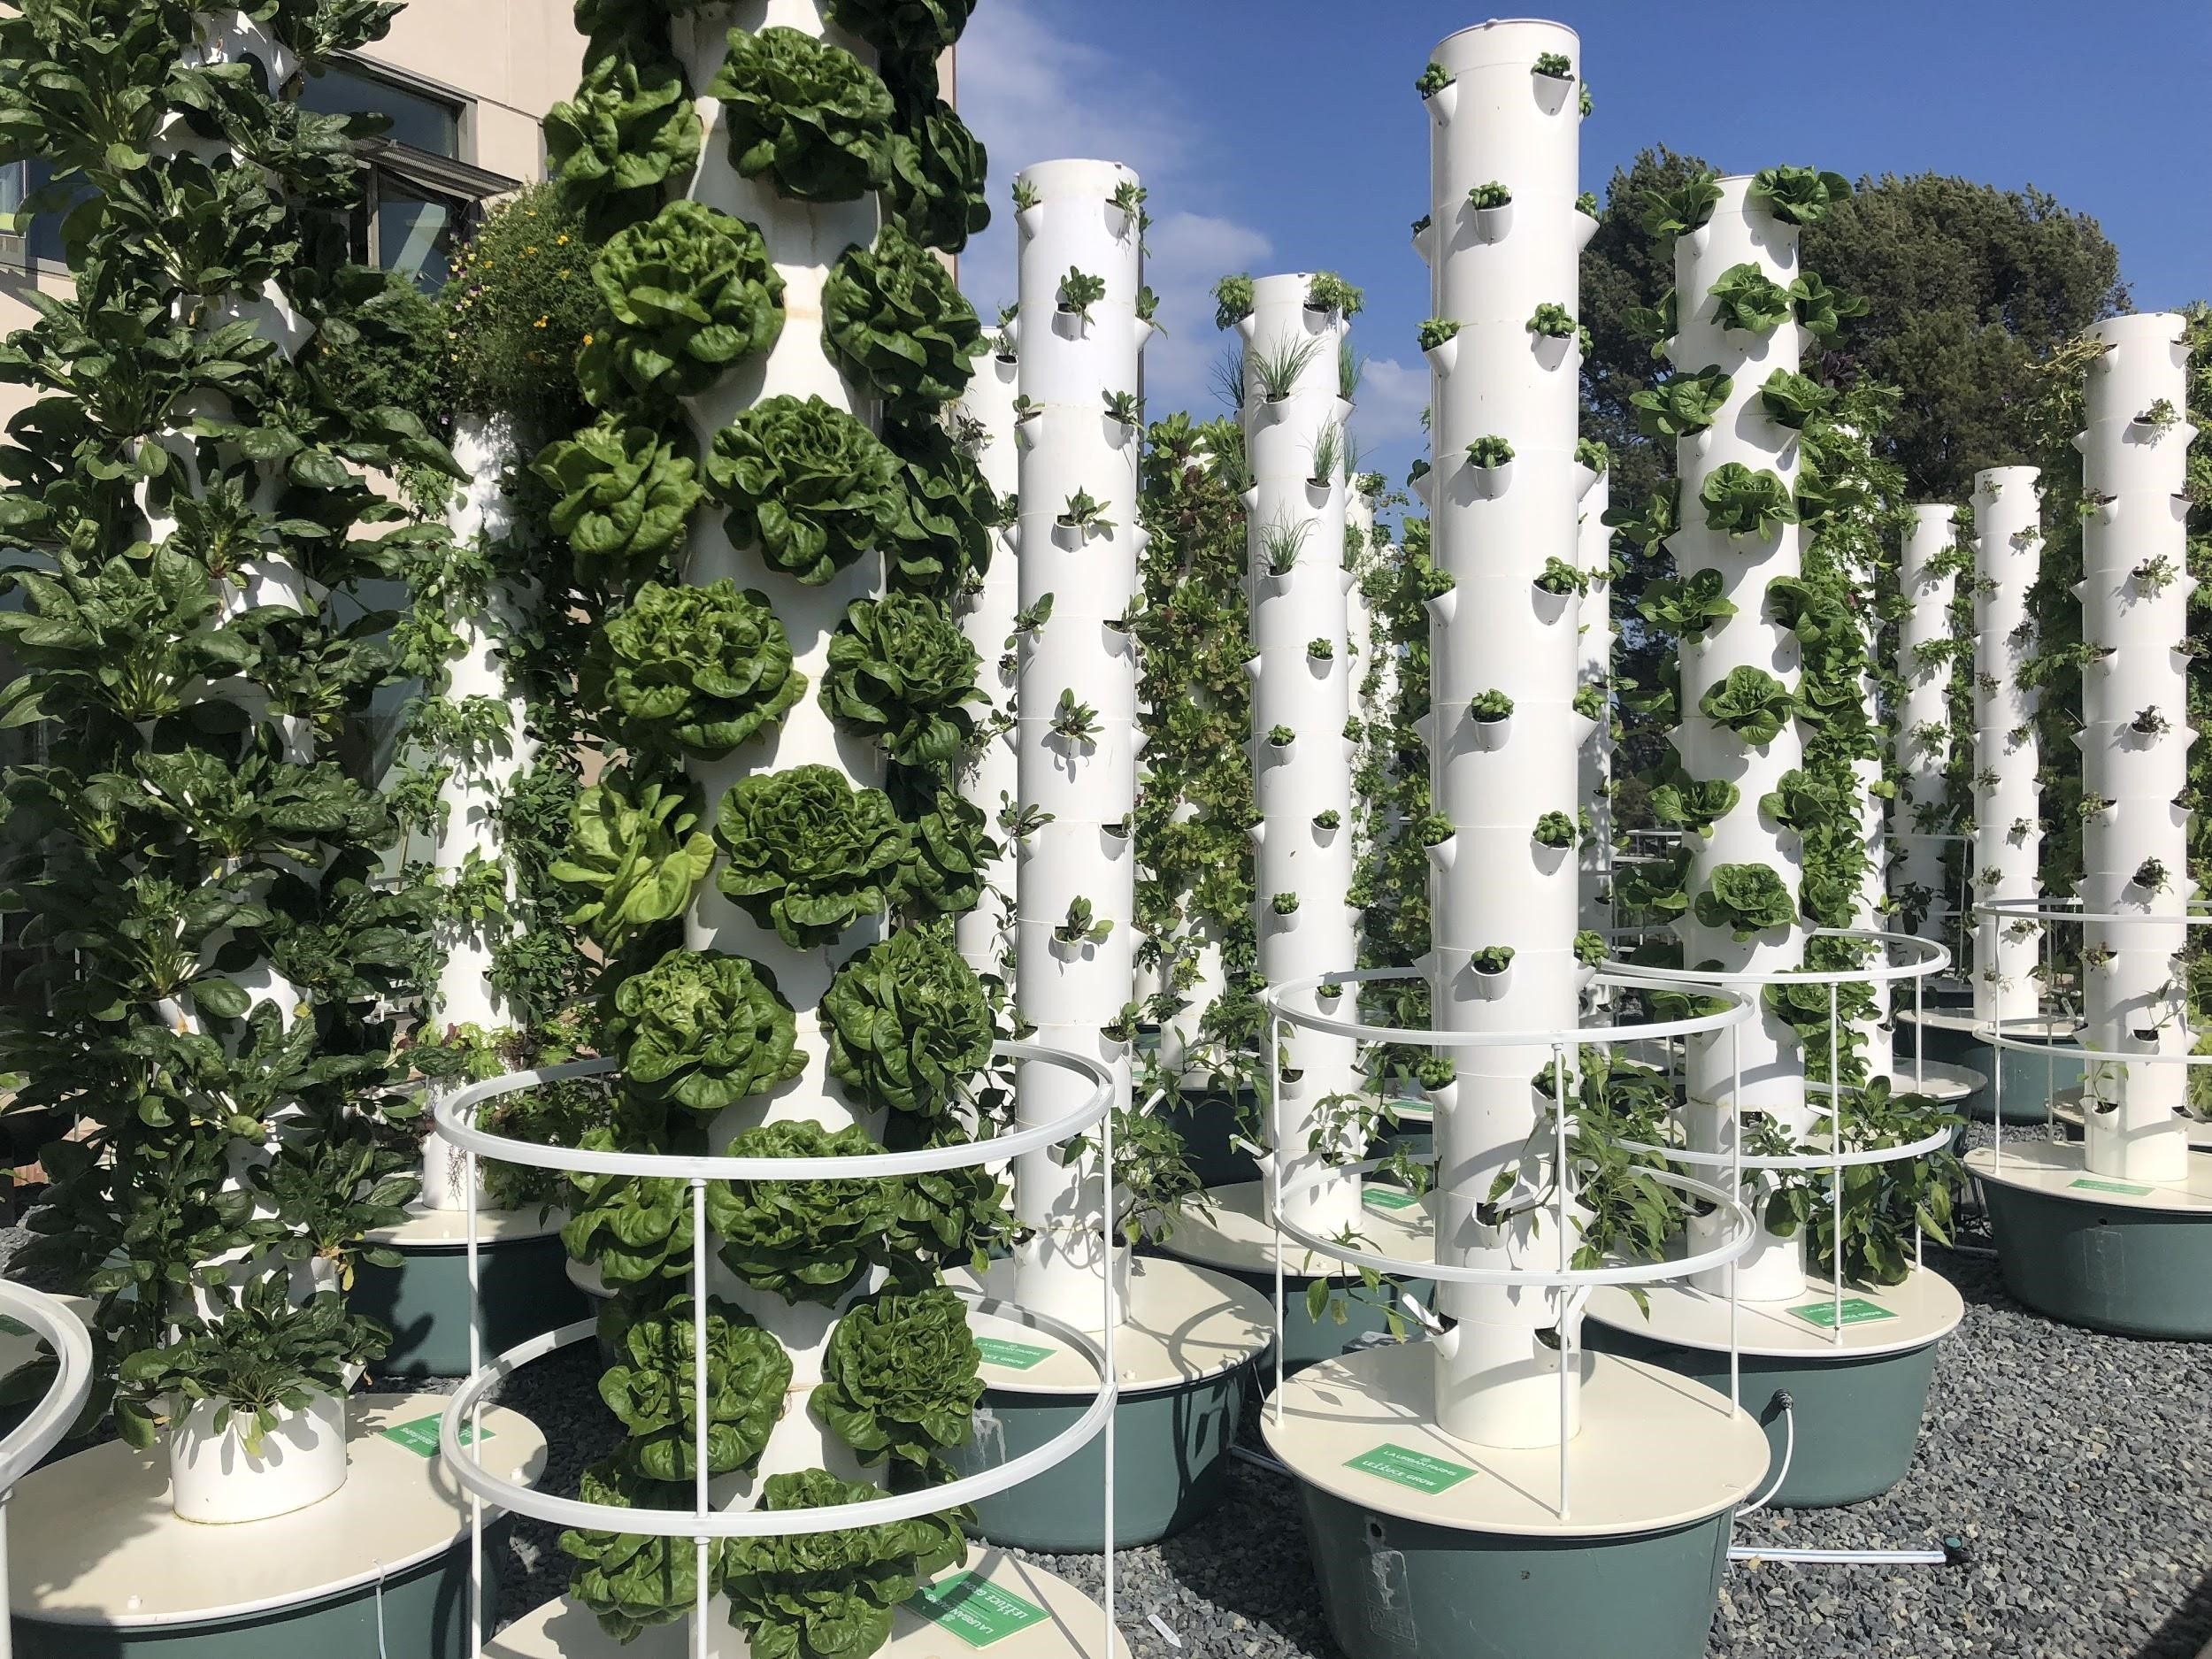 Innovative tower gardens located near the UCLA dormitories to demonstrate an approach towards urban farming.